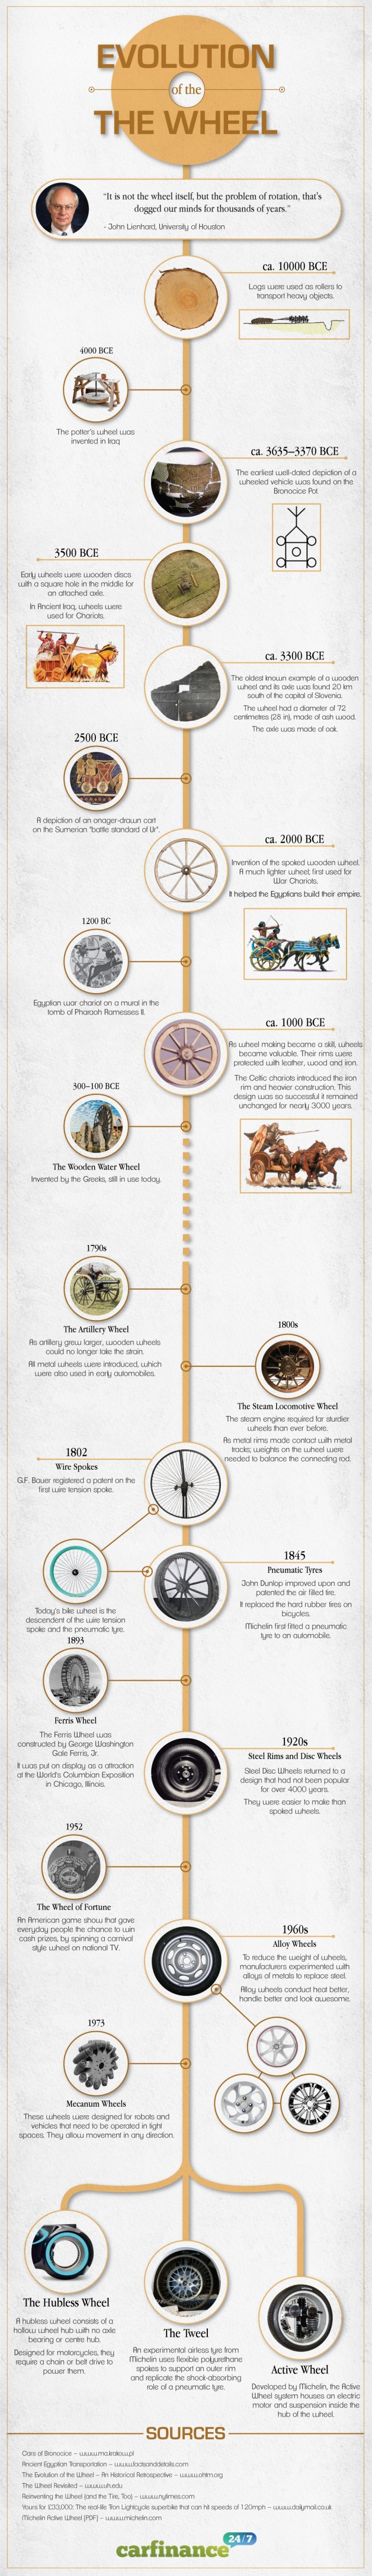 Historia de la rueda -Evolution of the wheel